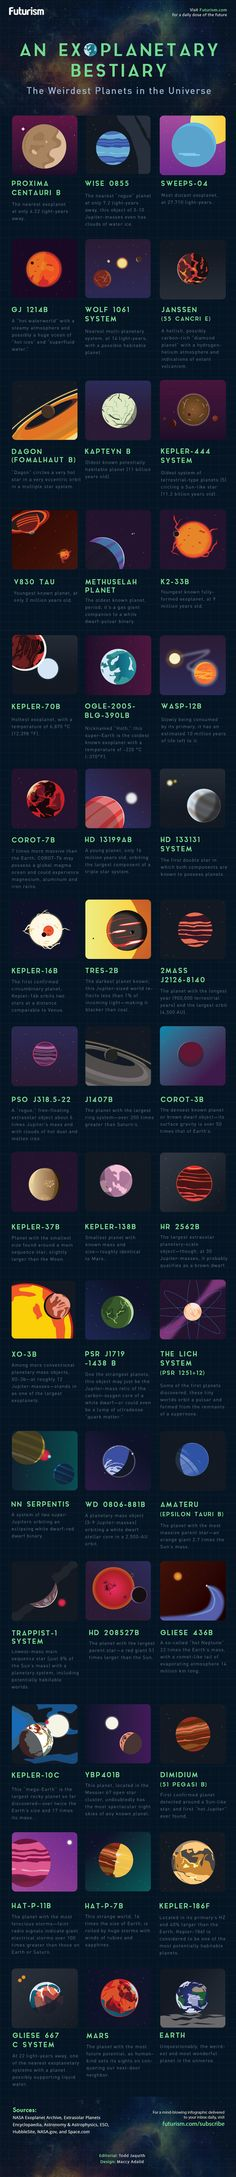 See if your favorite exoplanet made it on Futurism's roster of the strangest planets in the universe. https://futurism.com/images/an-exoplanetary-bestiary-the-weirdest-planets-in-the-universe-infographic/?utm_campaign=coschedule&utm_source=pinterest&utm_medium=Futurism&utm_content=An%20Exoplanetary%20Bestiary%3A%20The%20Weirdest%20Planets%20in%20the%20Universe%20%5BINFOGRAPHIC%5D